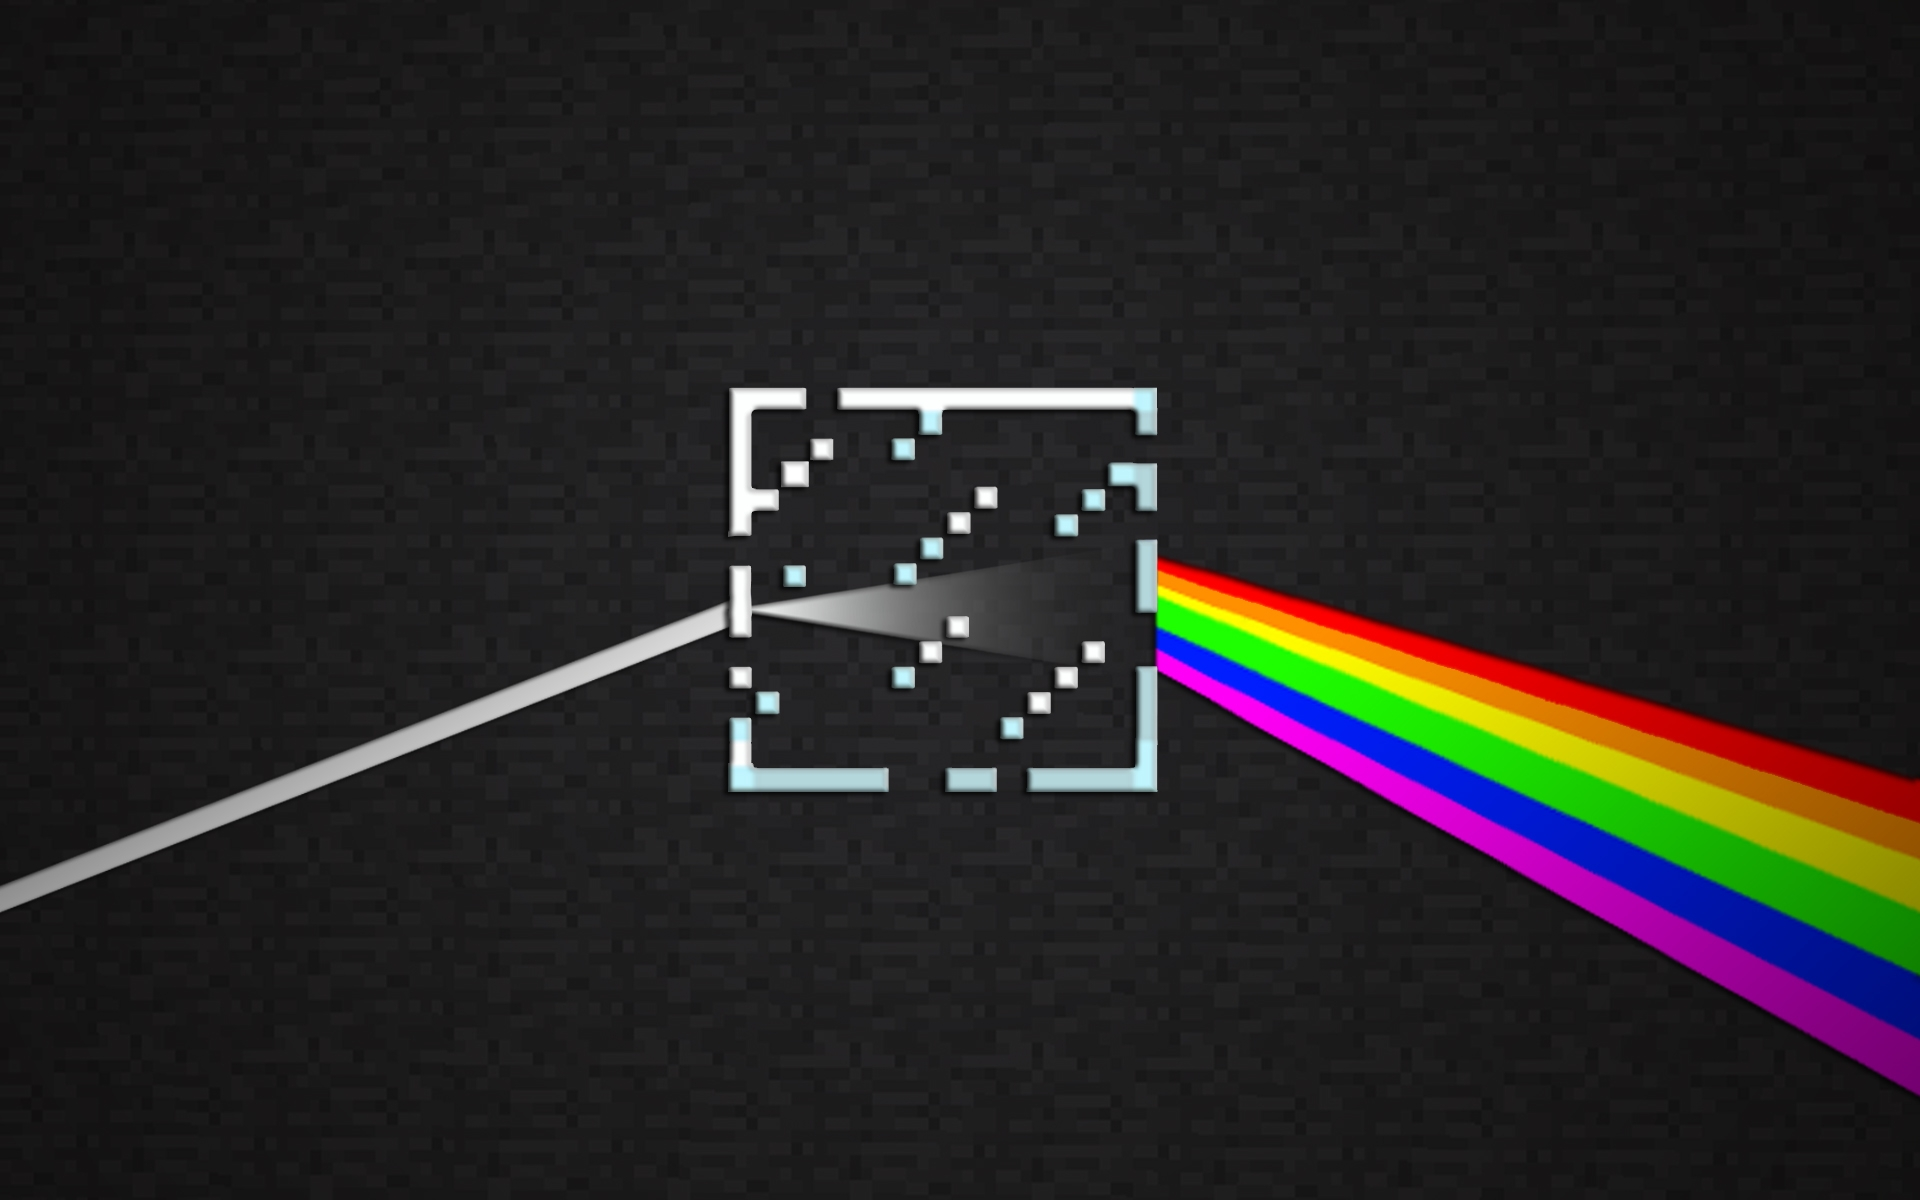 Minecraft Pink Floyd Hd Wallpaper